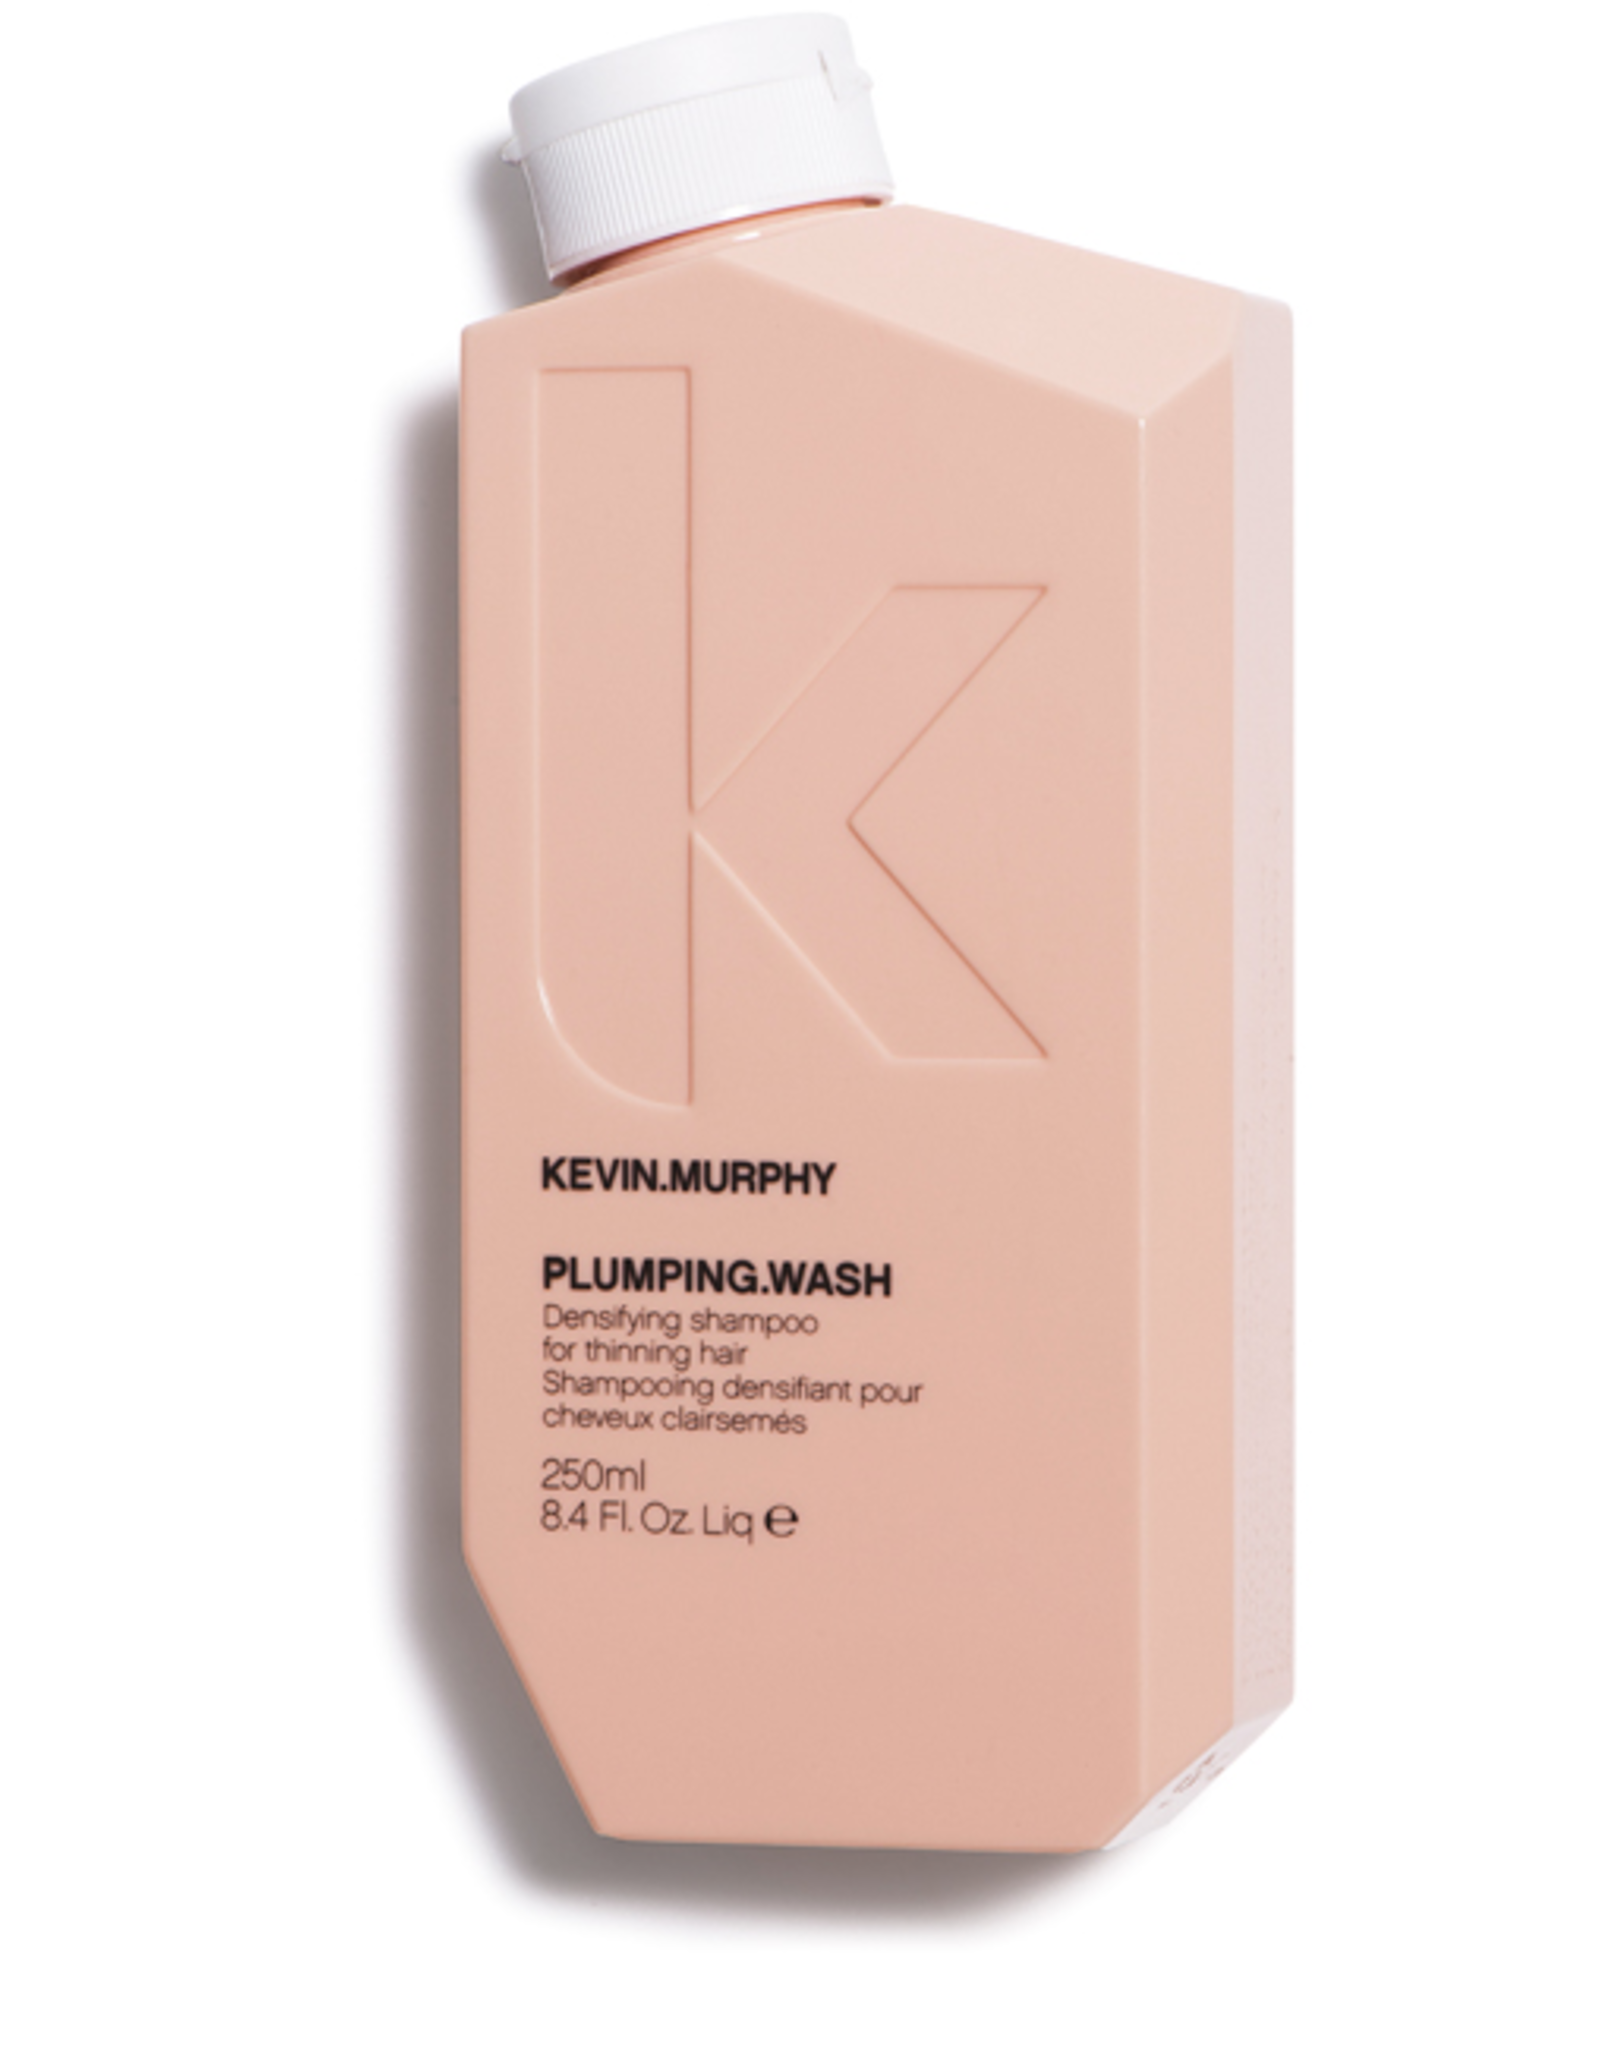 KEVIN.MURPHY Plumping.Wash (250 ml)